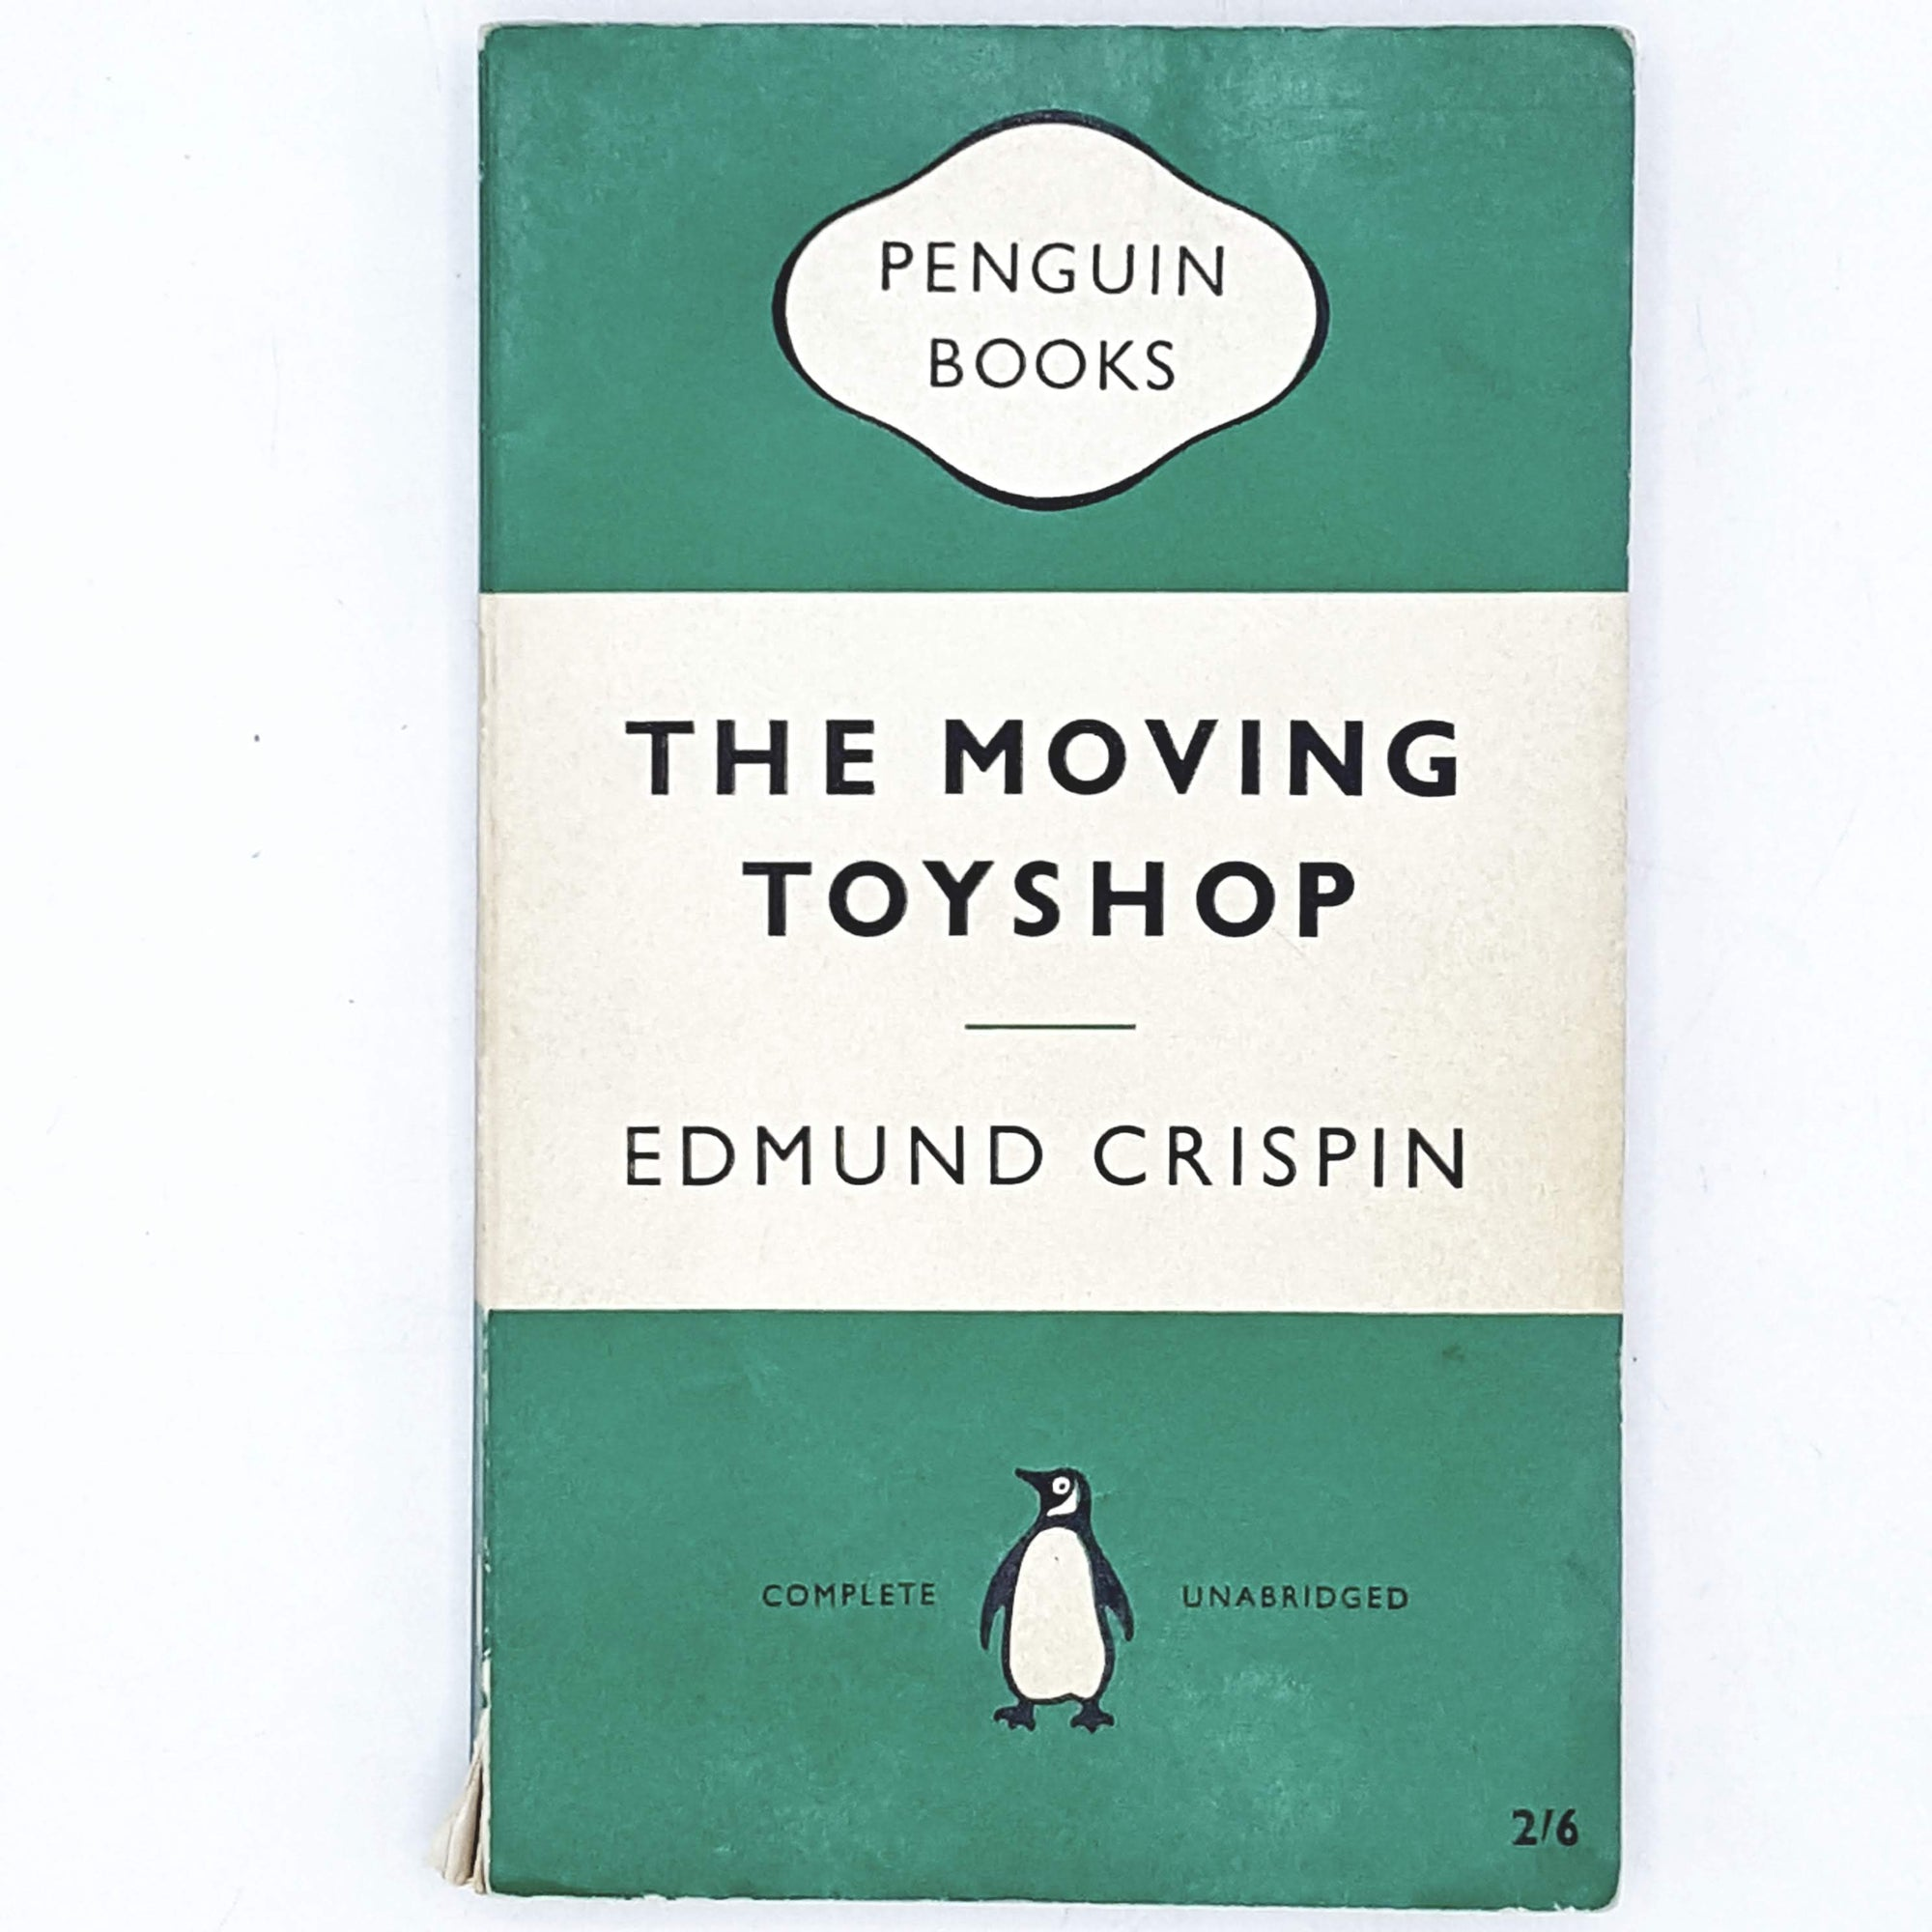 Vintage Penguin The Moving Toyshop by Edmund Crispin 1960